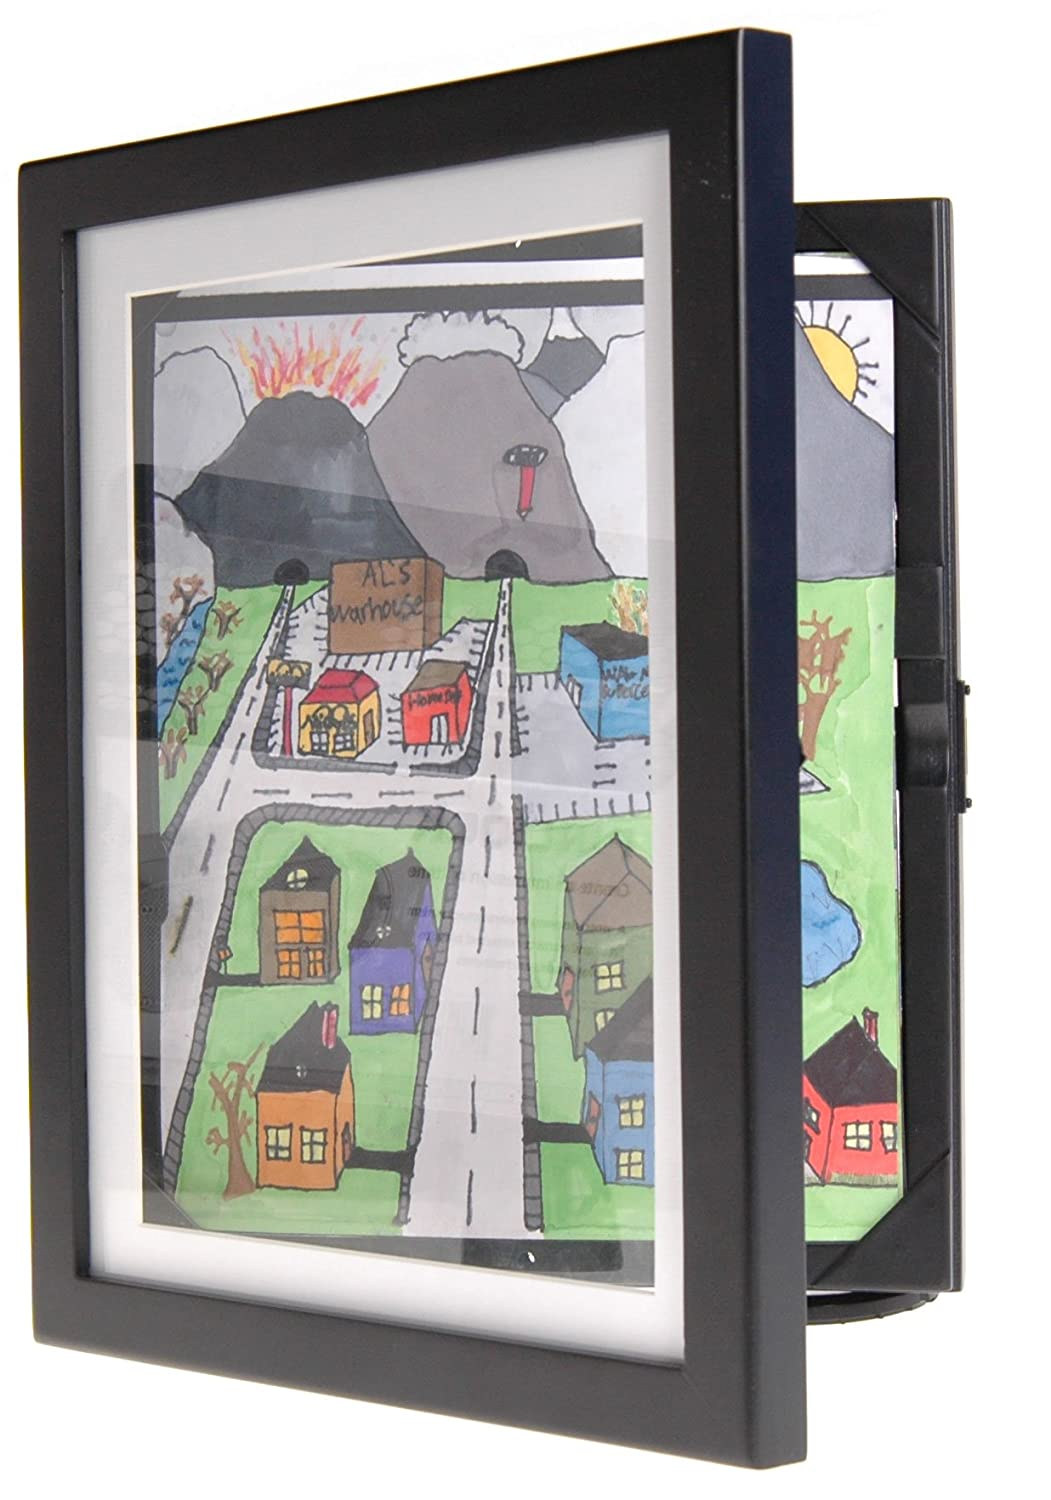 Child Artwork Frame - Display And Store Your Child's Masterpieces